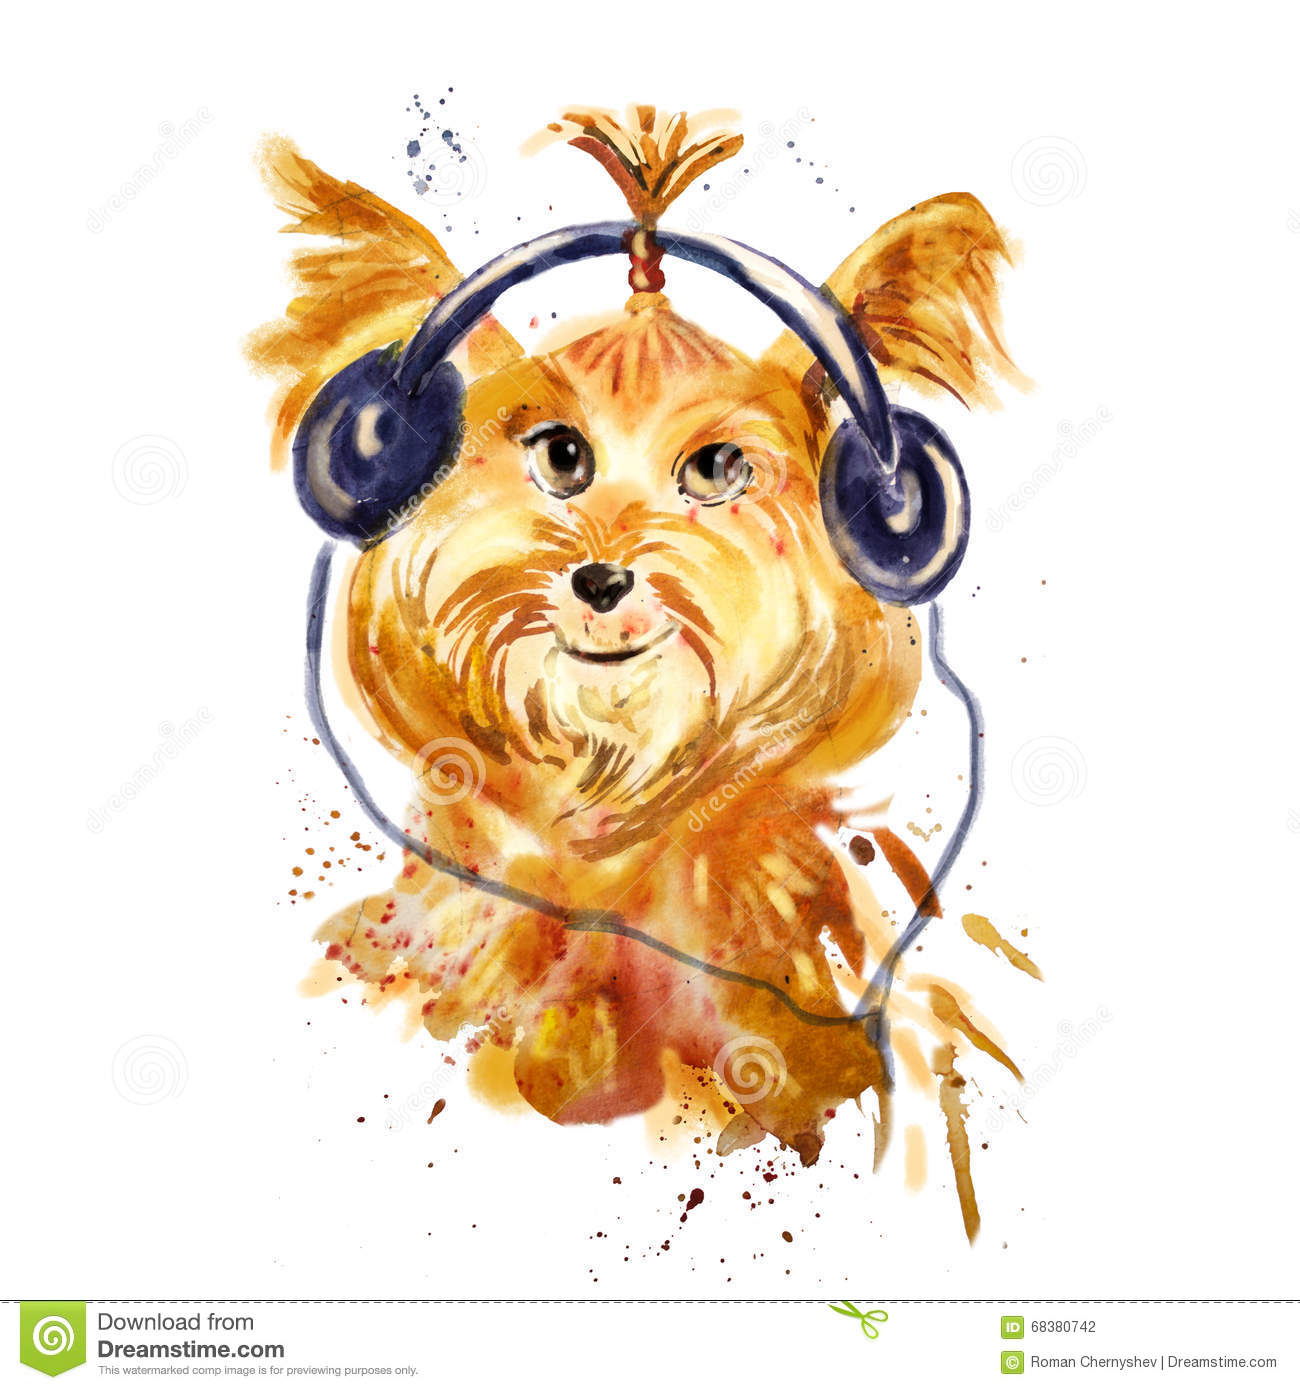 Watercolor close up portrait of a dog in headphones